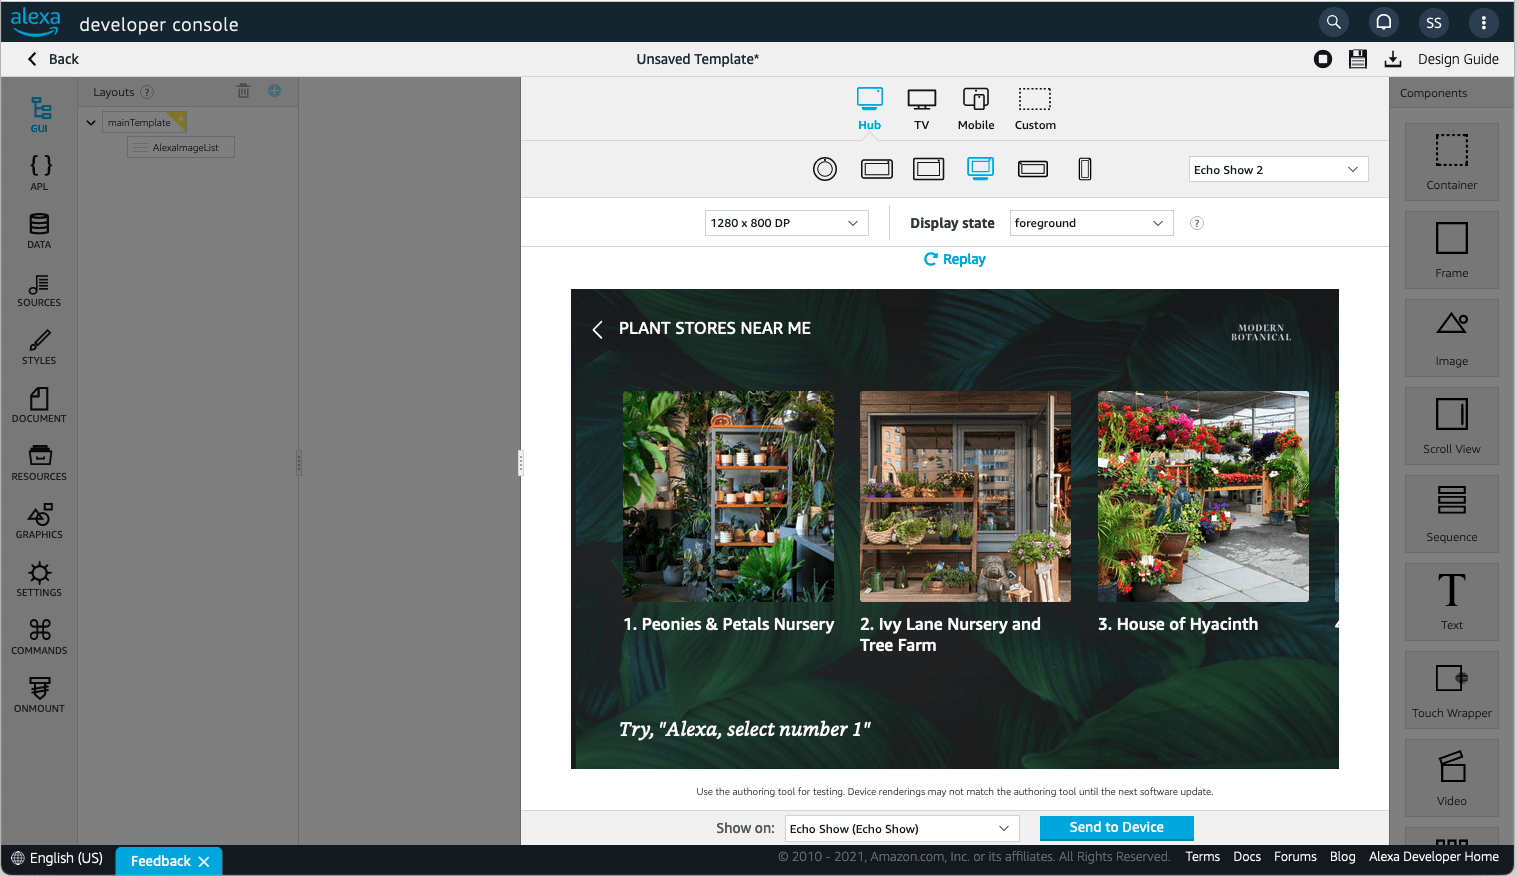 Displaying a document in preview mode